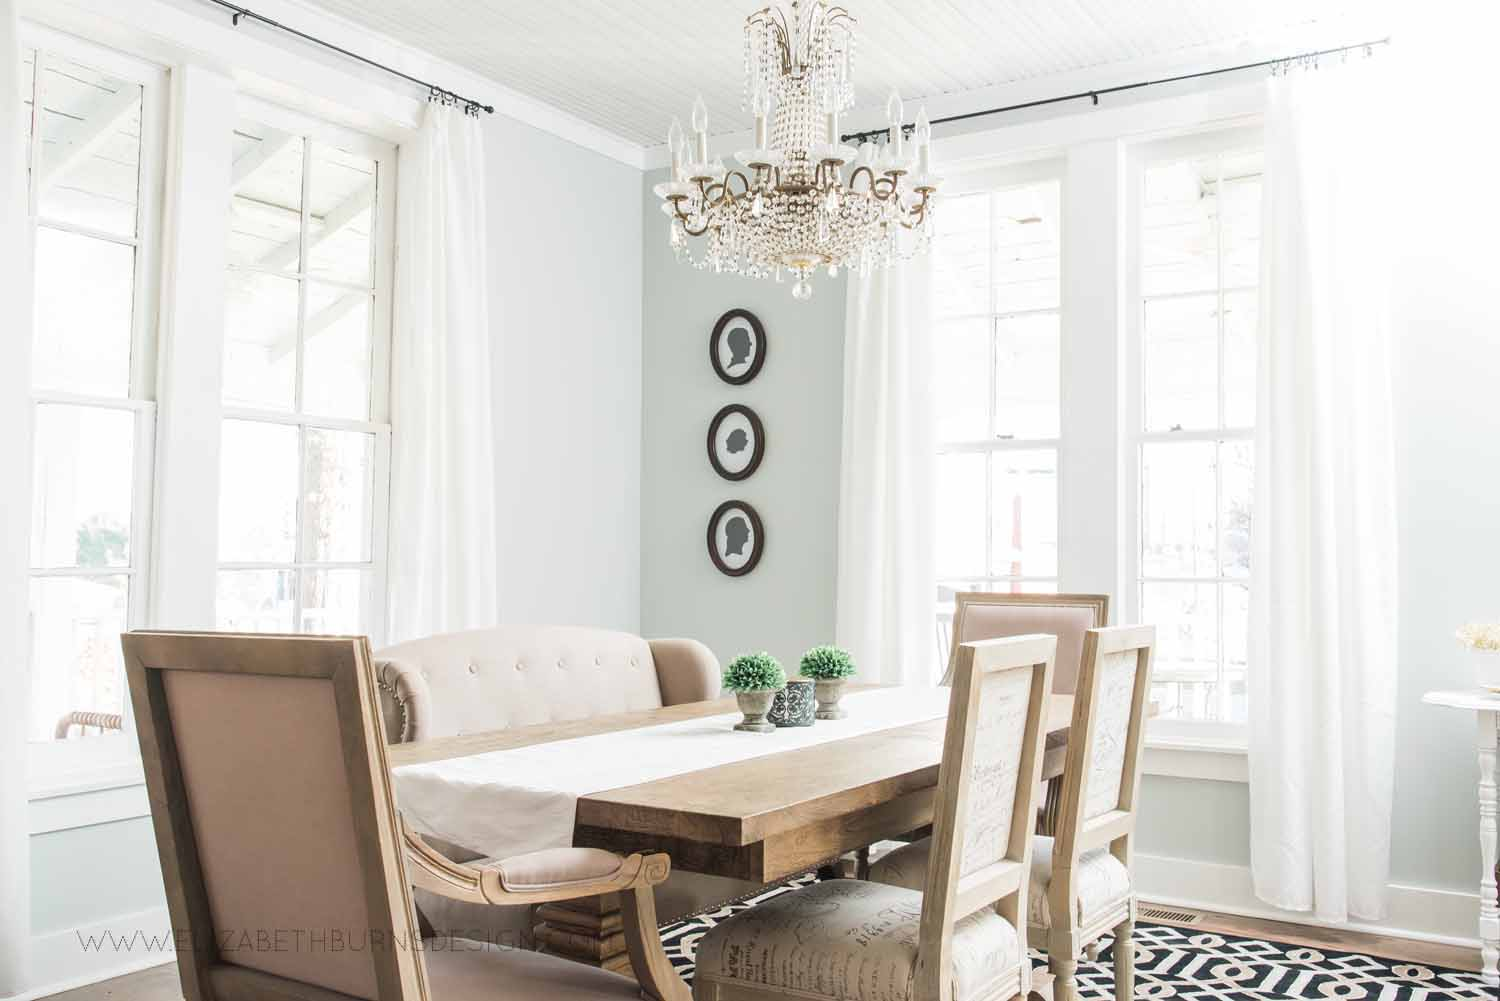 Elizabeth Burns Design Raleigh Interior Designer  Farmhouse Fixer Upper Cottage Renovation, Sherwin Williams Silver Strand SW 7057 Dining Room (4).jpg